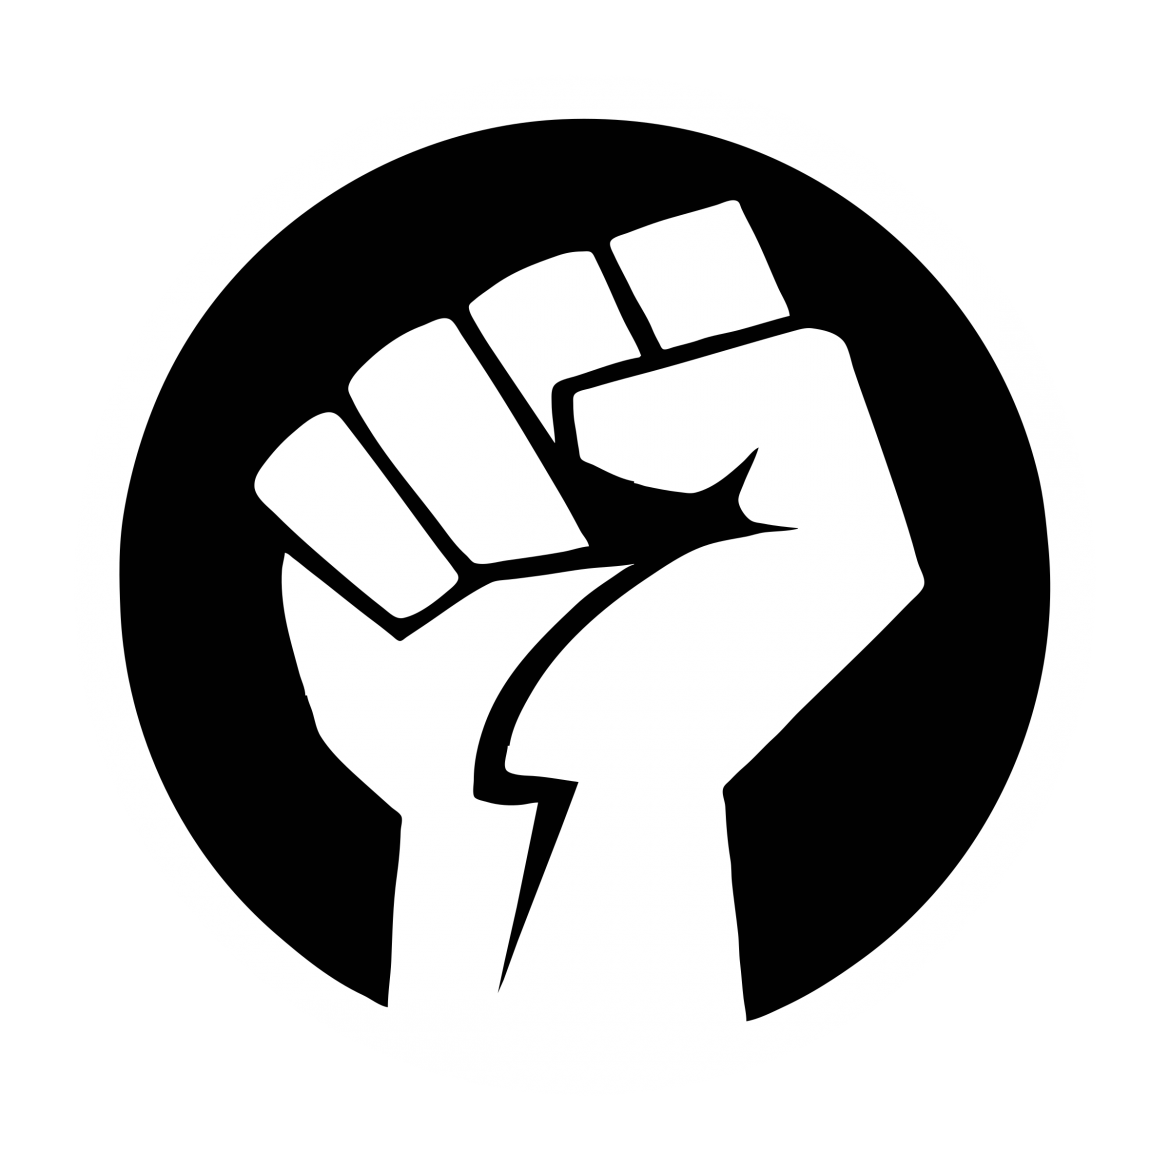 Money fist icon black white clipart prayer vector free library Are Humans Constantly in Pursuit of Power? | Youth Are Awesome vector free library